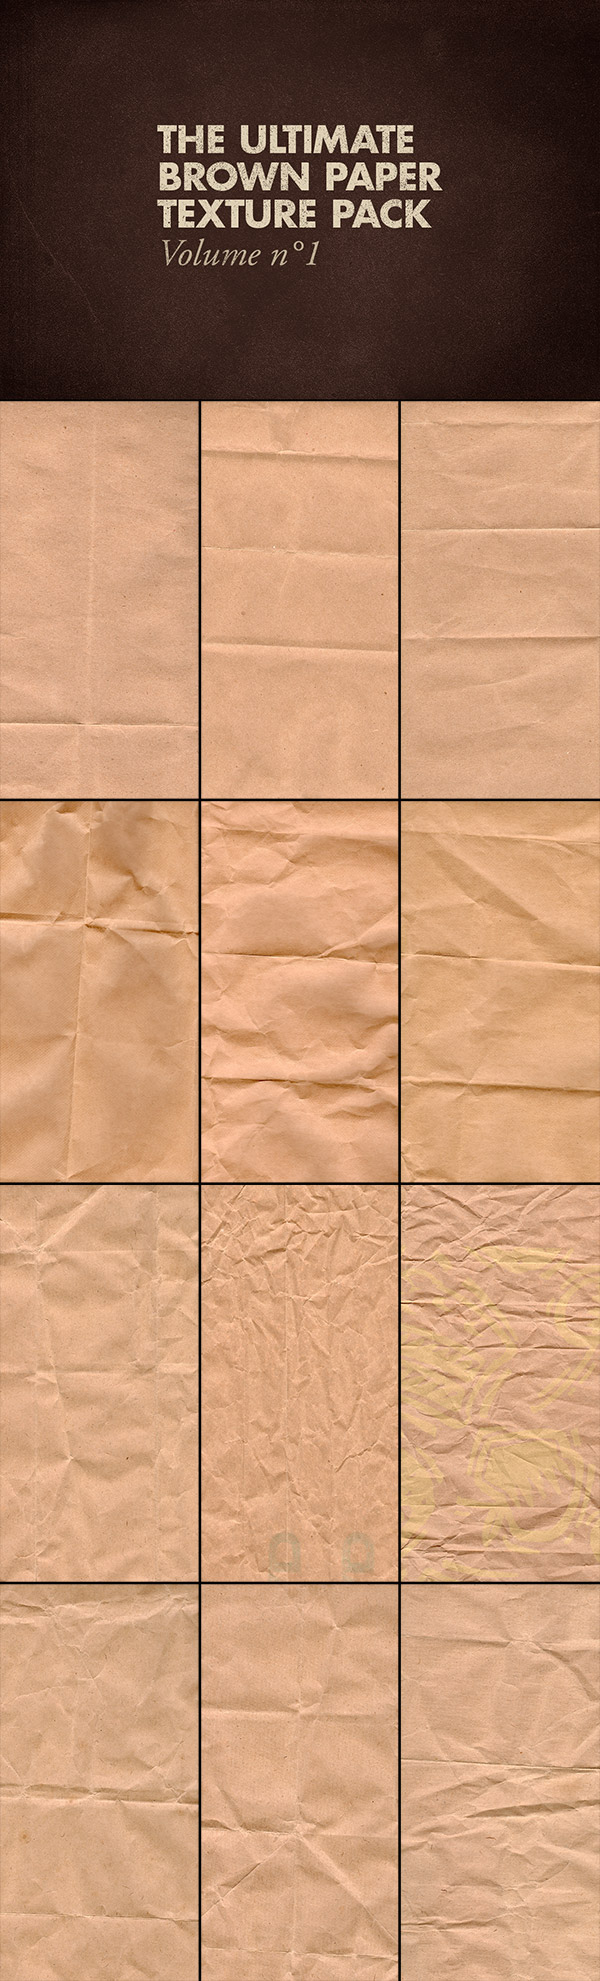 The Ultimate Brown Paper Texture Pack Volume 1